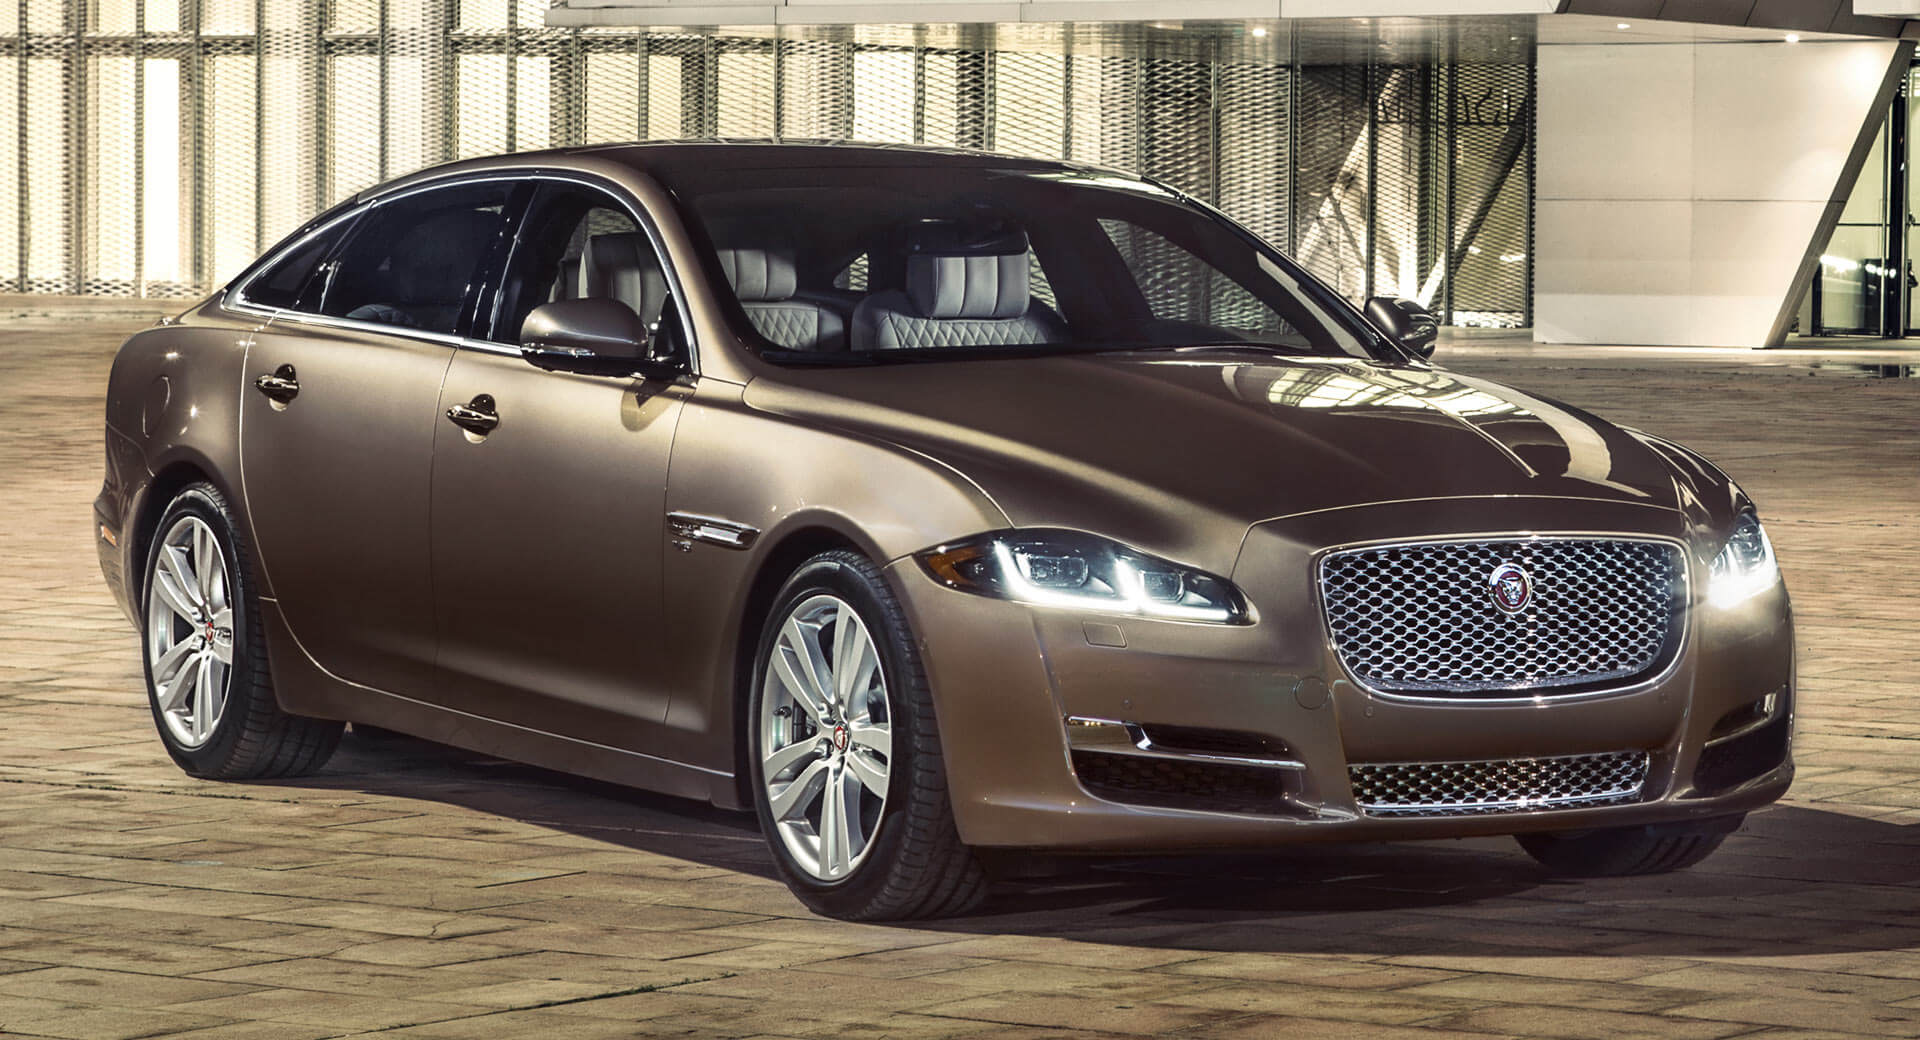 Next Gen Jaguar Xj Will Reportedly Become An Electric